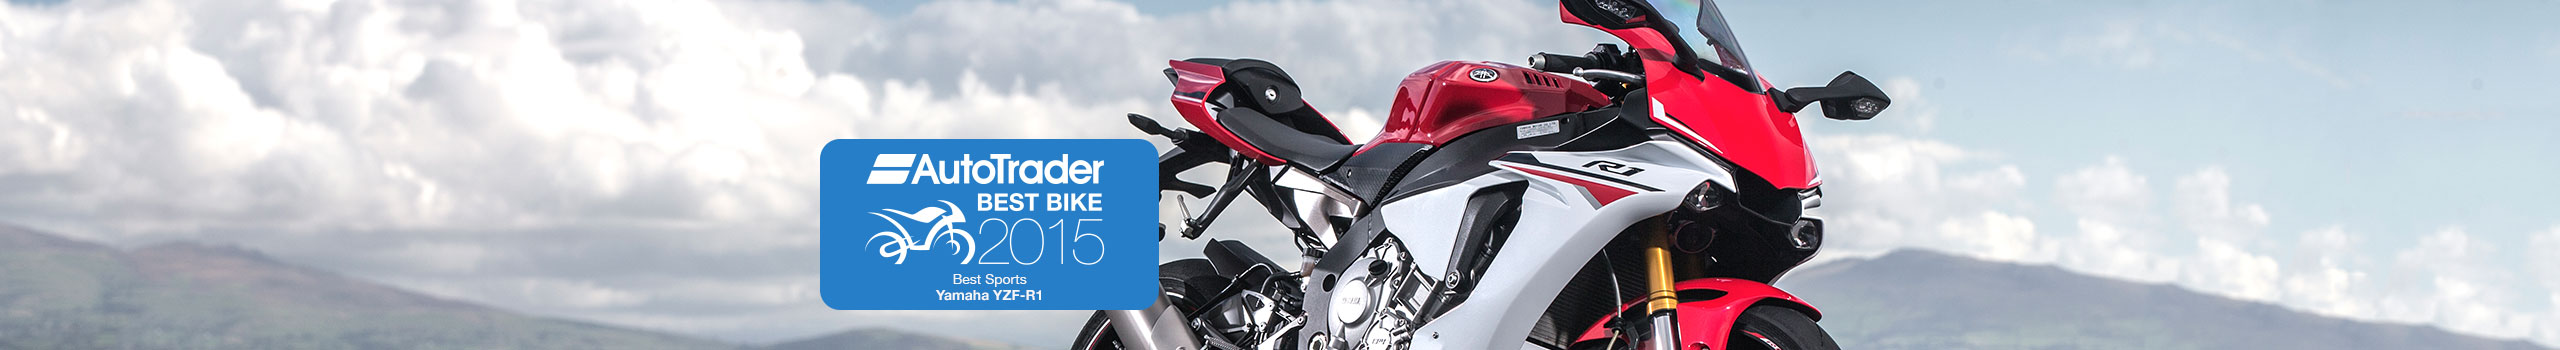 Yamaha R1 motorcycles for sale on Auto Trader Bikes